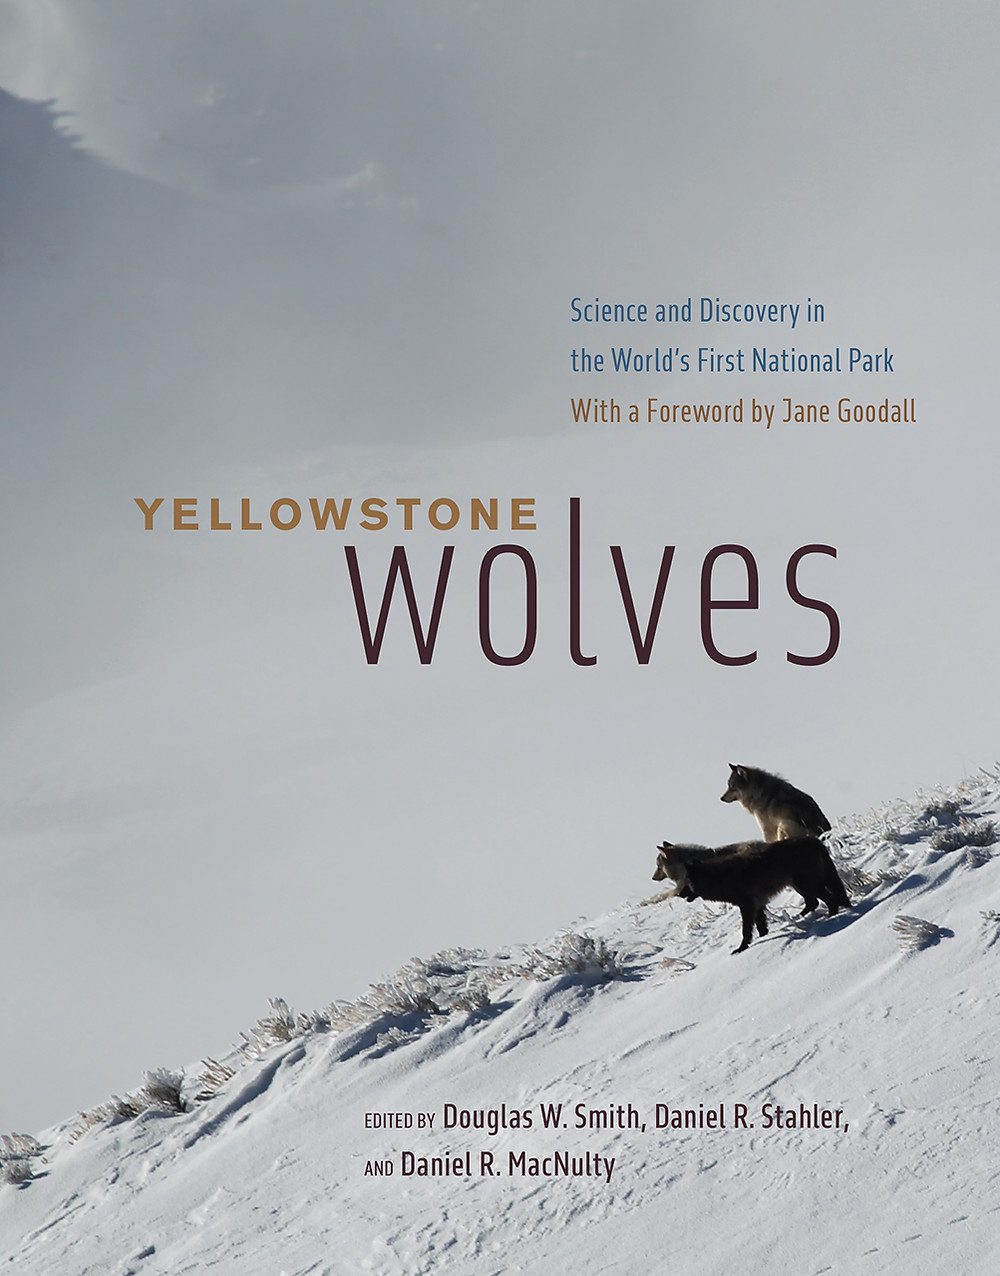 Book title, Yellowstone Wolves: Science and Discovery in the world's first national park